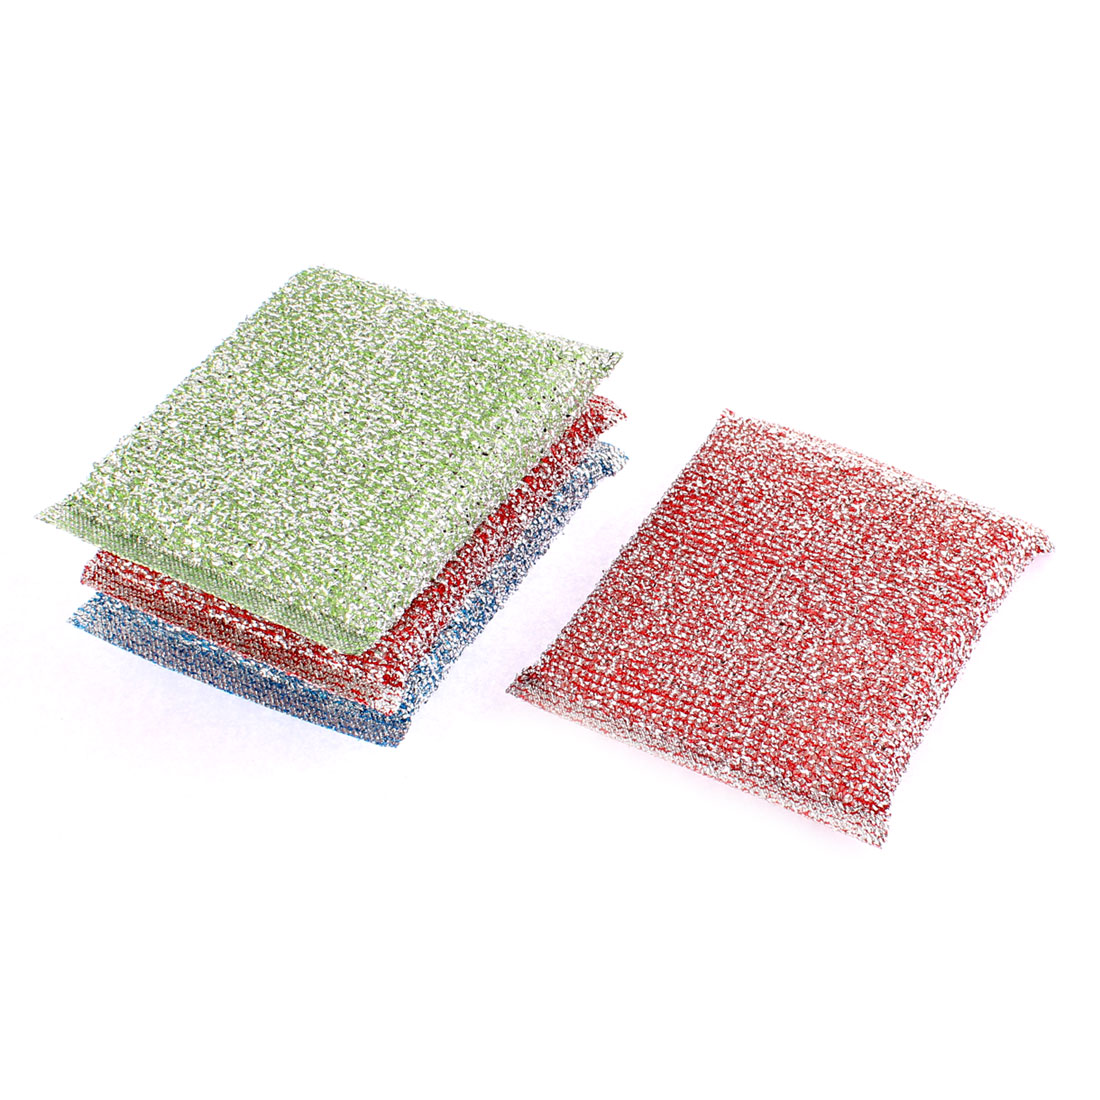 Home Kitchen Dish Bowl Scouring Sponge Pad Cleaner 4Pcs